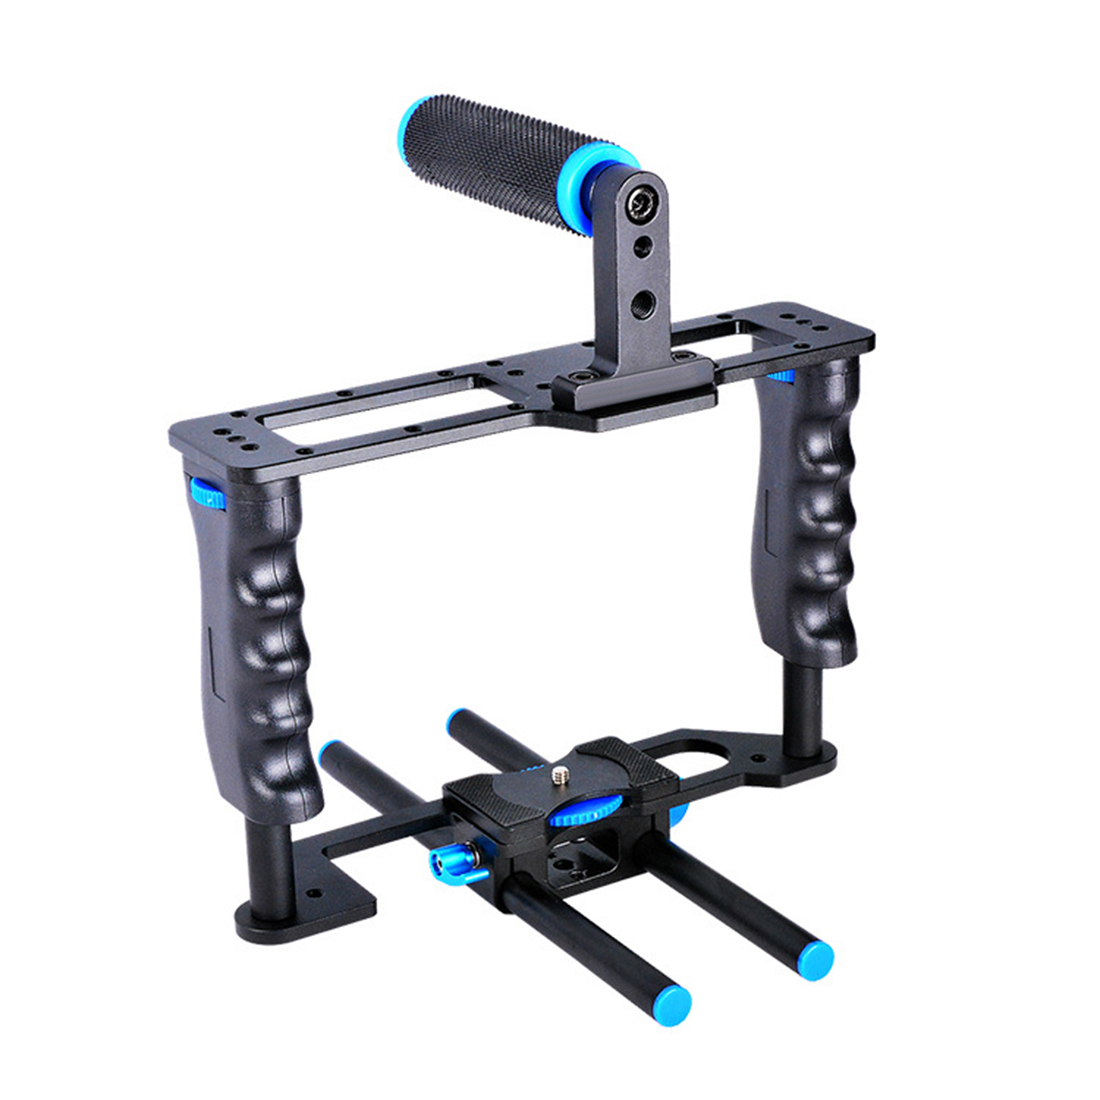 Aluminum Alloy ABS Camera Video Cage Film Movie Making Kit DSLR Cage & Handle Grip & Rod for Canon 5D2 700D 650D for Nikon D7200Aluminum Alloy ABS Camera Video Cage Film Movie Making Kit DSLR Cage & Handle Grip & Rod for Canon 5D2 700D 650D for Nikon D7200